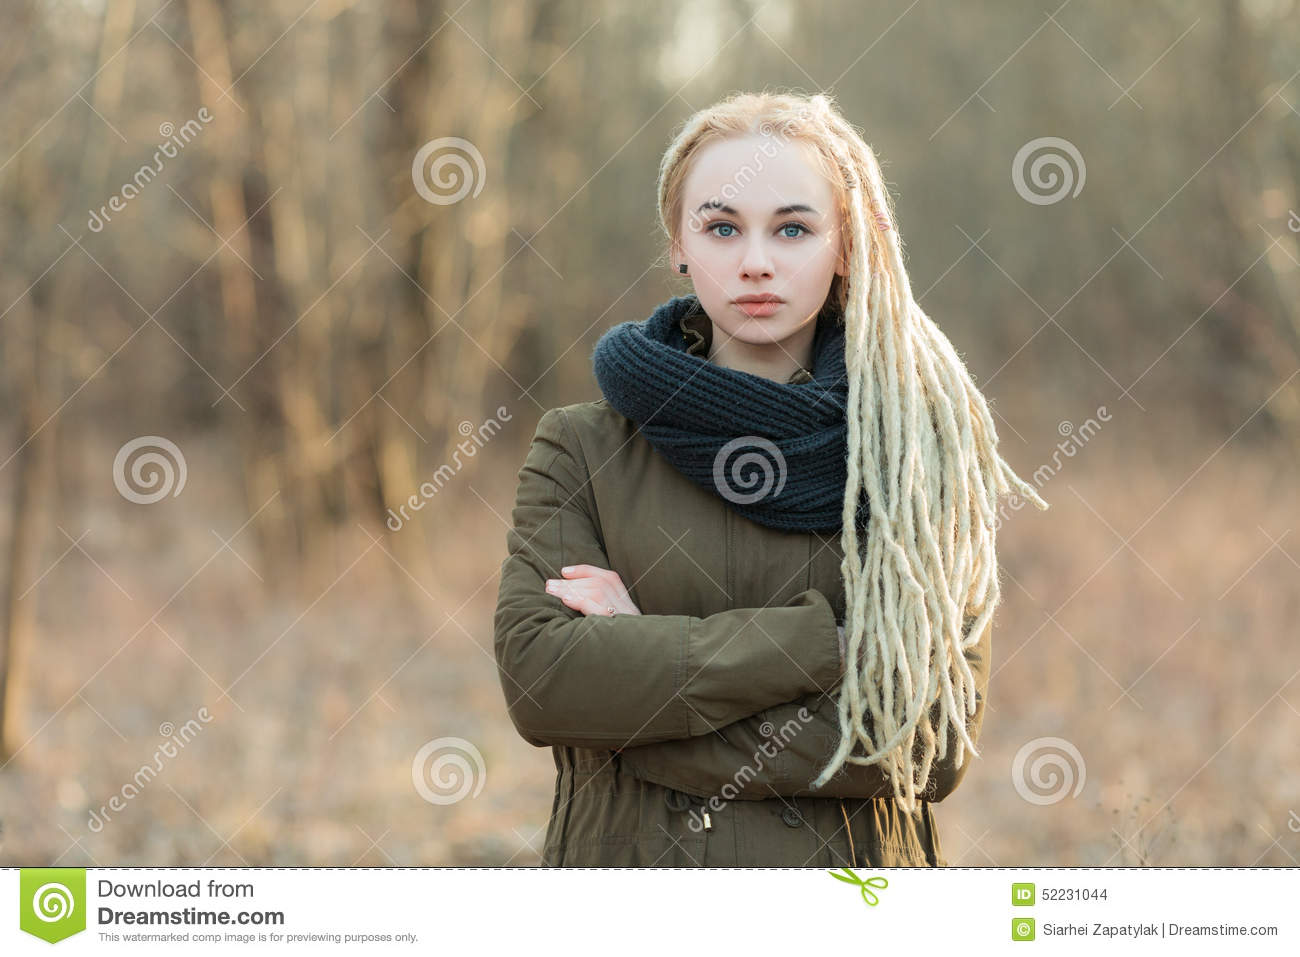 belle femme blonde de hippie d 39 oung dans l 39 charpe et la parka avec la coiffure de dreadlocks. Black Bedroom Furniture Sets. Home Design Ideas